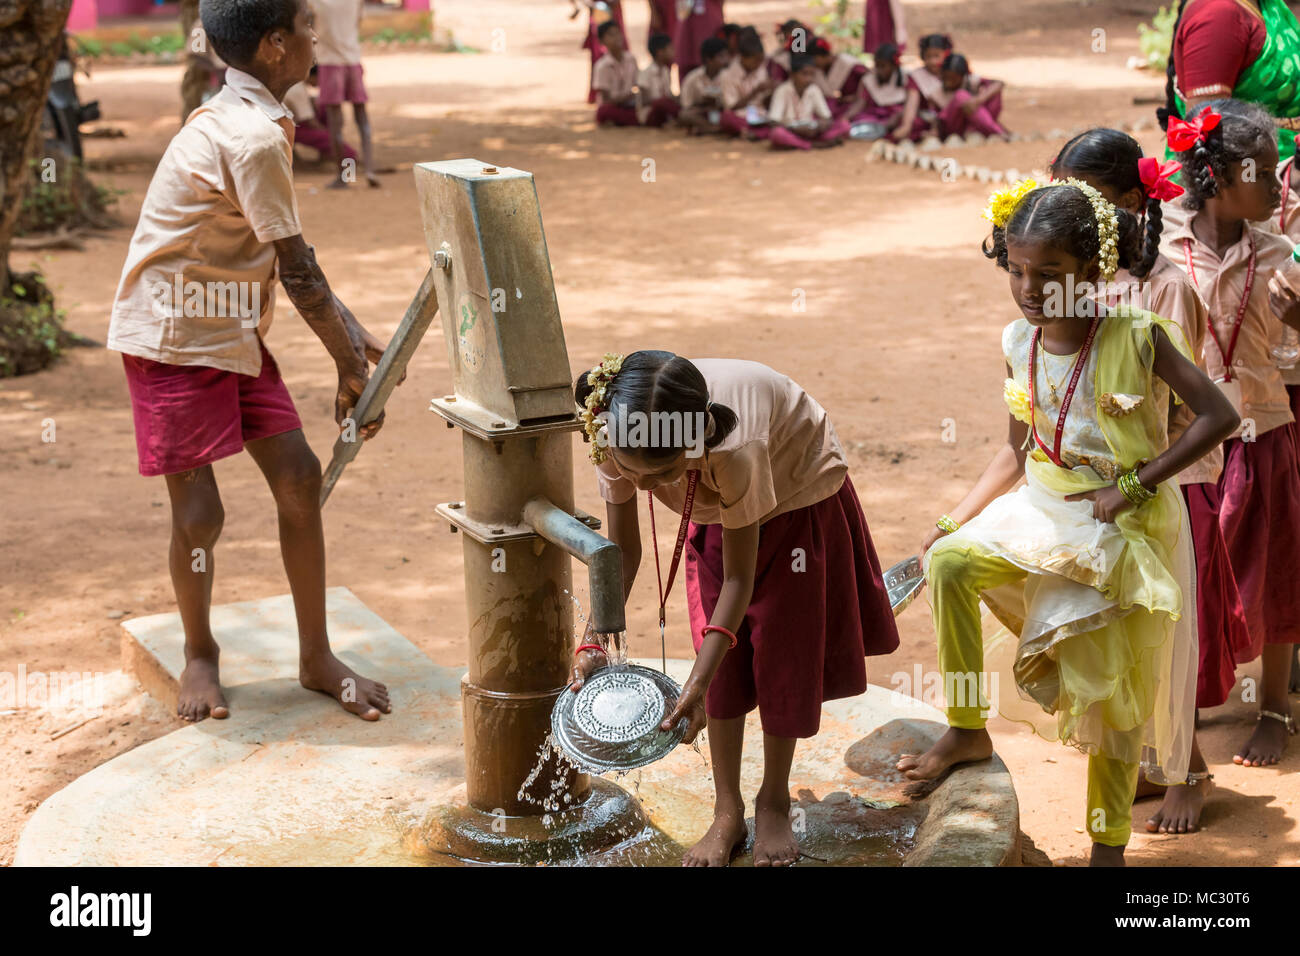 PONDICHERY, PUDUCHERY, INDIA - SEPTEMBER 04, 2017. Unidentified boys girls children clean their plates before lunch at the outdoor canteen. Stock Photo